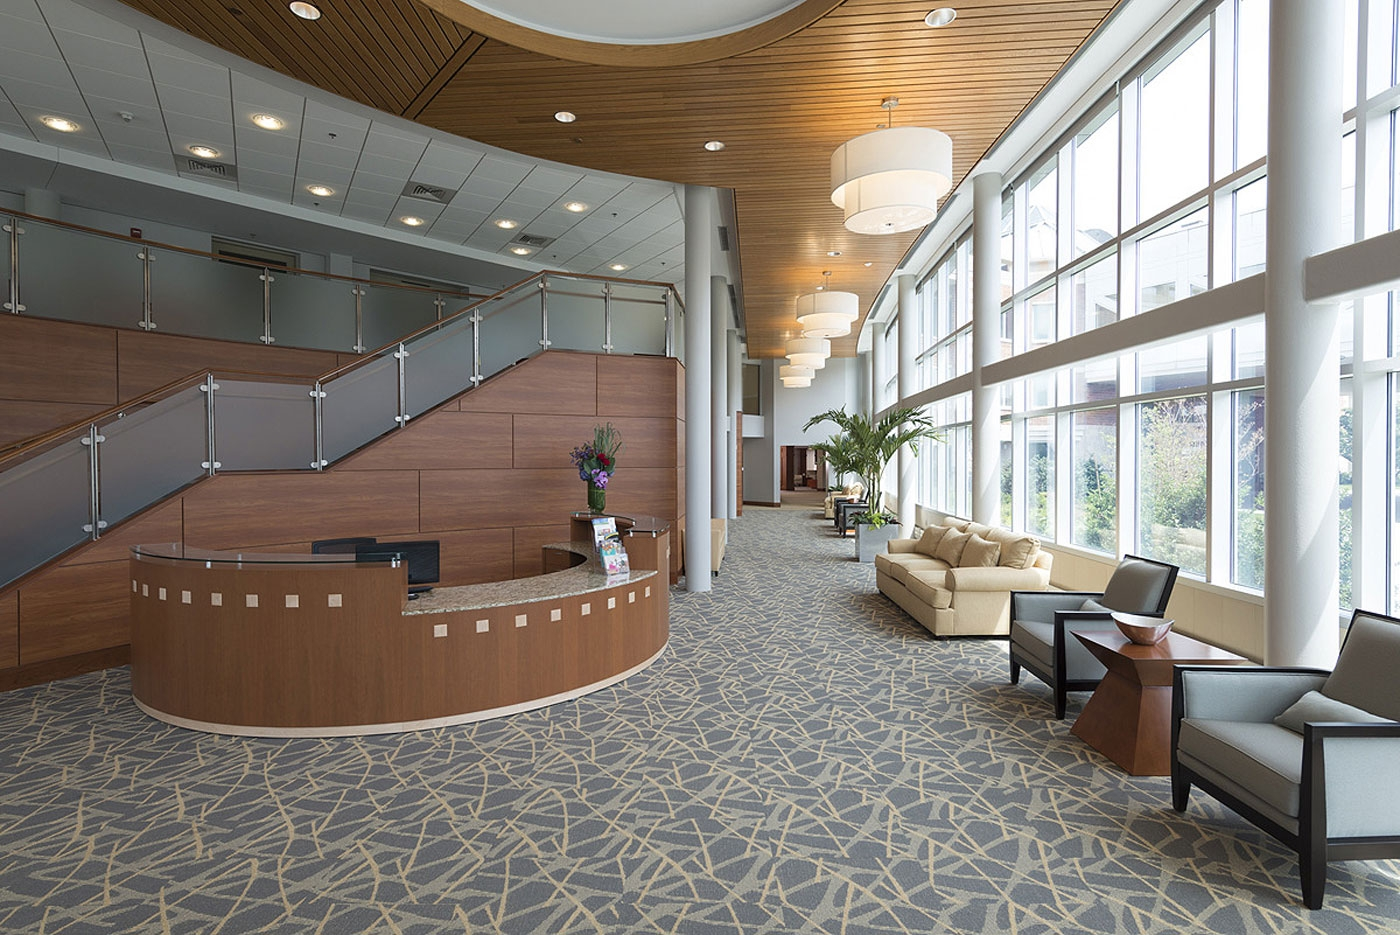 Our interior design highlights natural light in this lobby of a CCRC